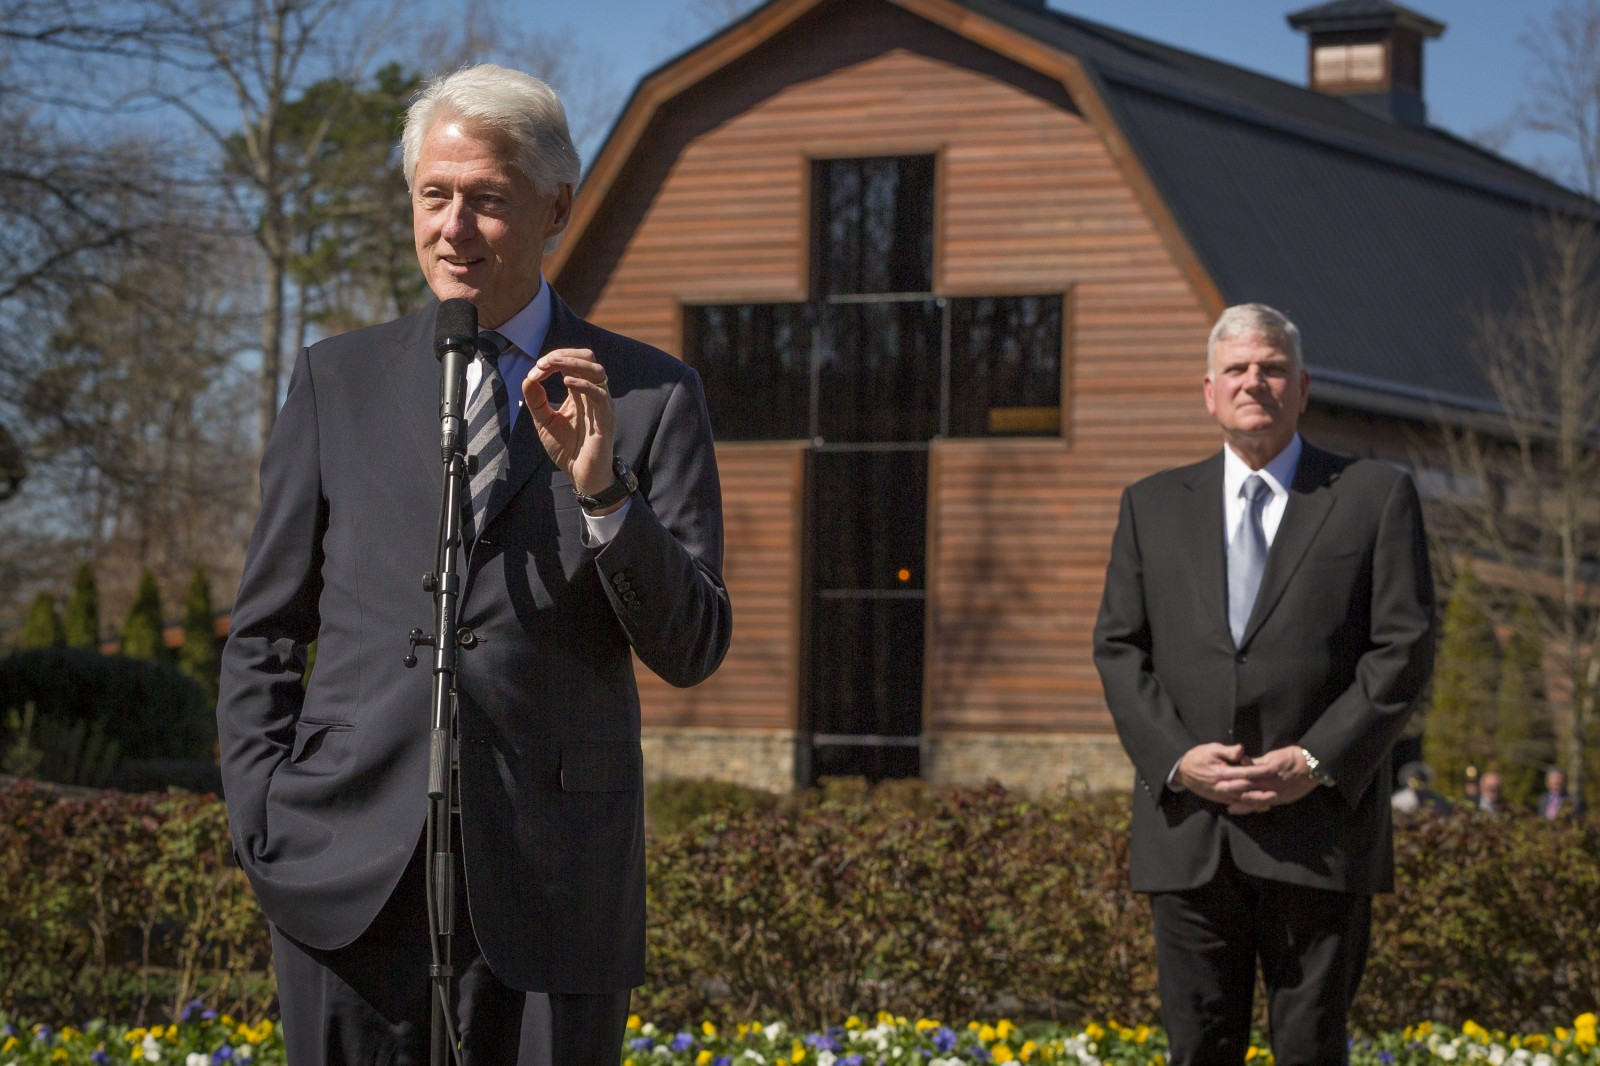 Bill Clinton addresses the crowd after visiting with the Grahams. Photo: Billy Graham Evangelistic Association<p></p>